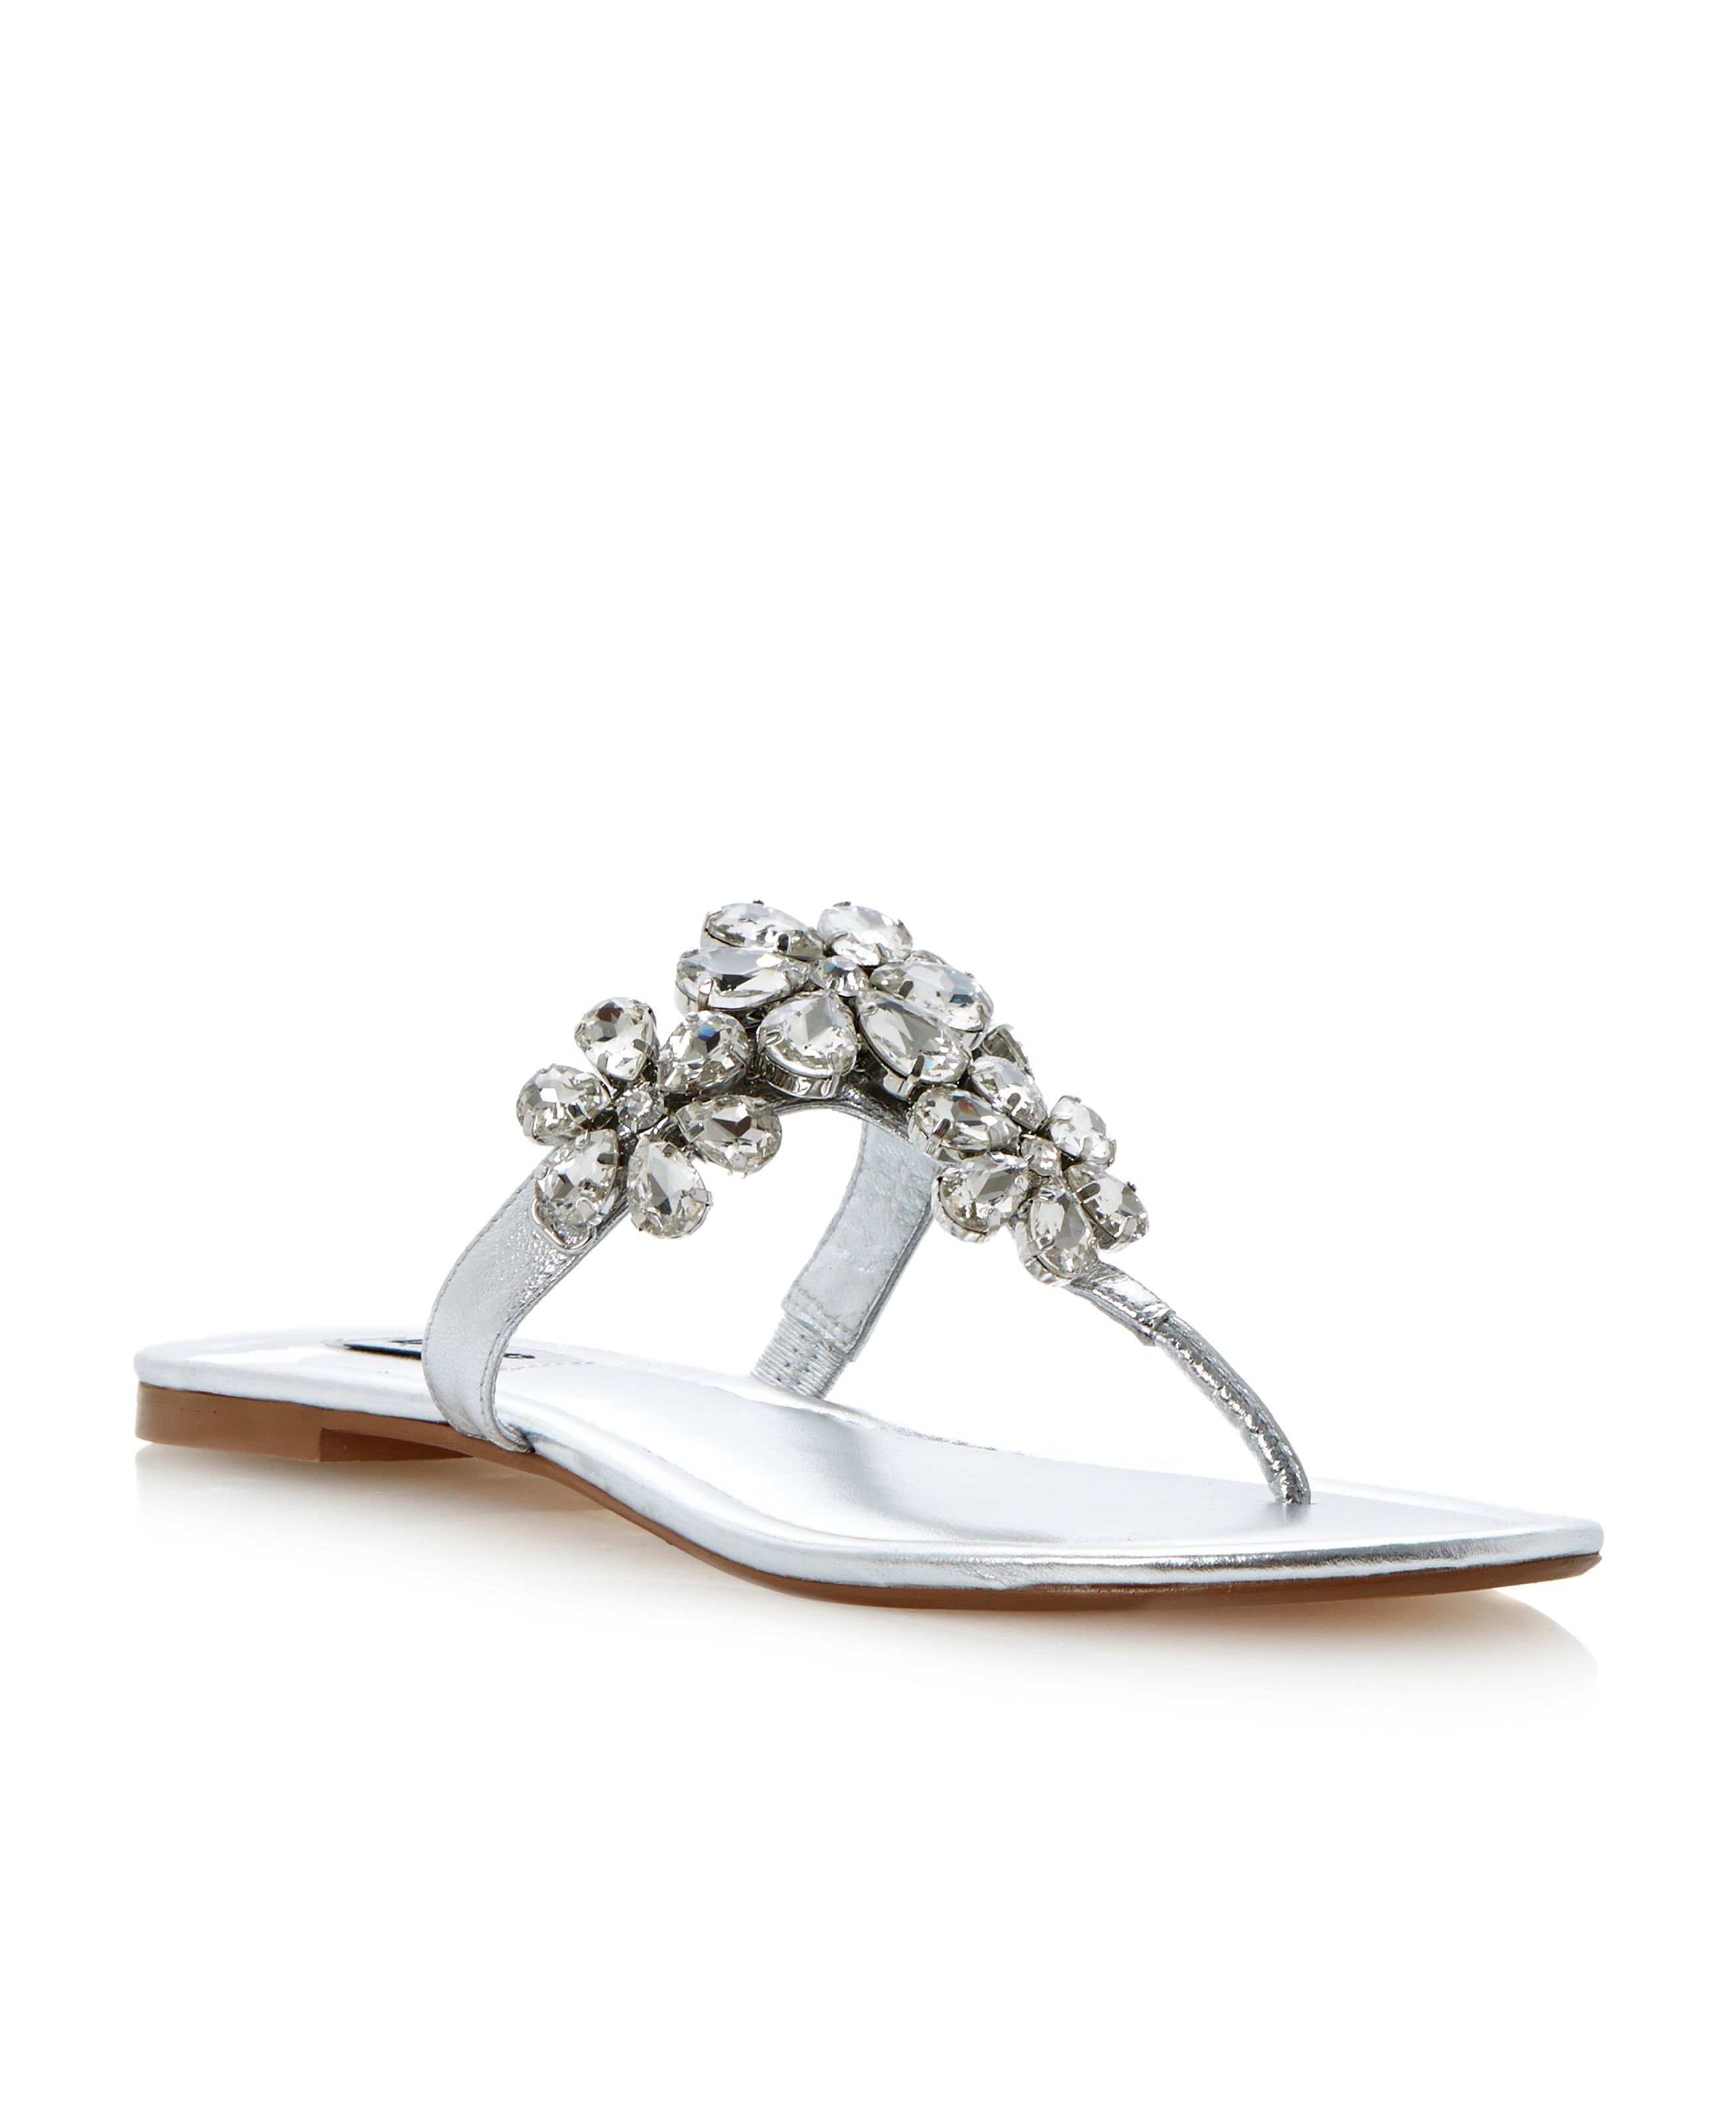 Kacey leather jewelled flower sandals